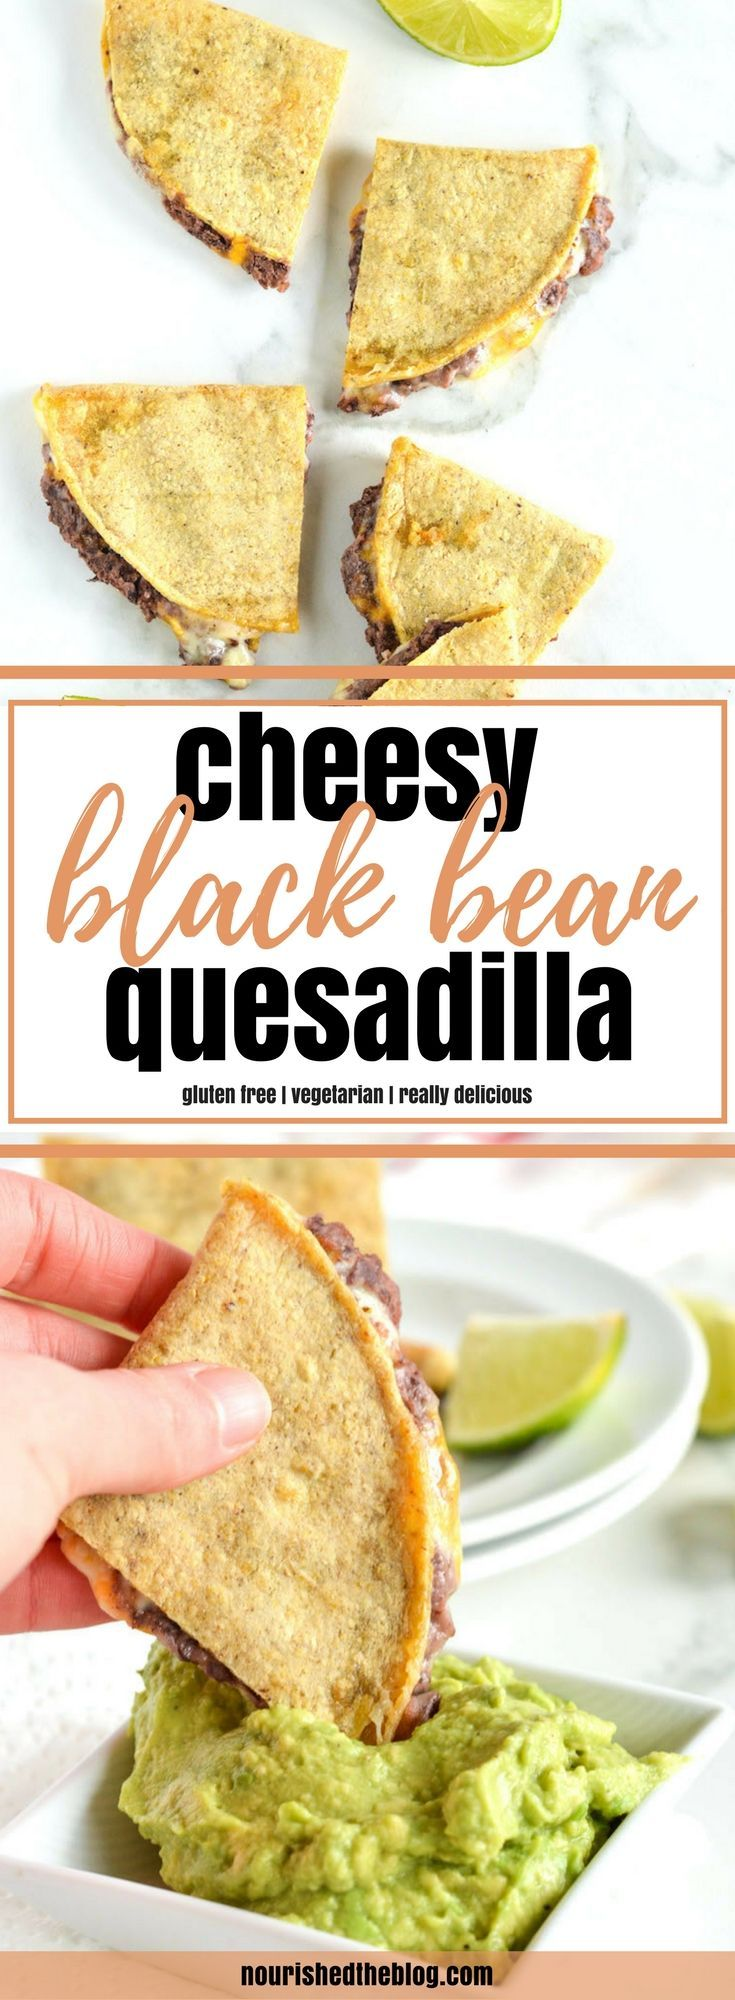 Looking for a way to make taco night exciting again? You have to try these Cheesy Black Bean Quesadillas! This healthier quesadilla recipe is super easy to make. Spicy black beans and melty cheese inside corn tortillas served with salsa and mashed avocado is the best type of gluten free and vegetarian comfort food.